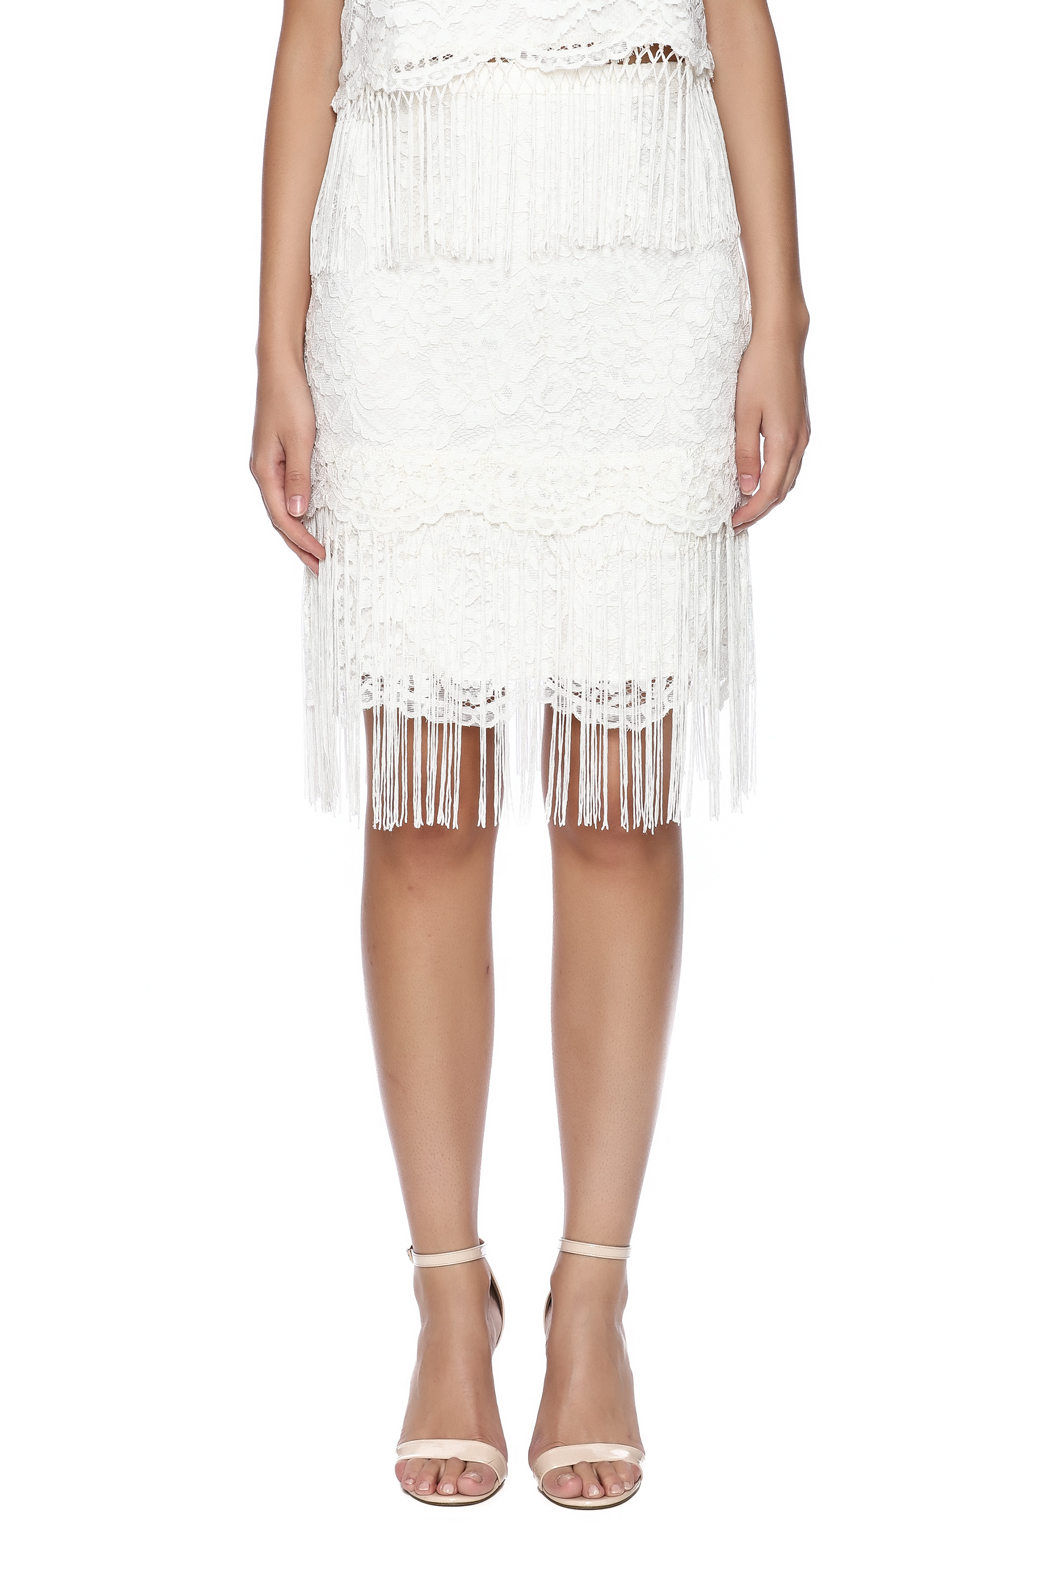 Ark & Co. Fringe Lace Skirt - Side Cropped Image